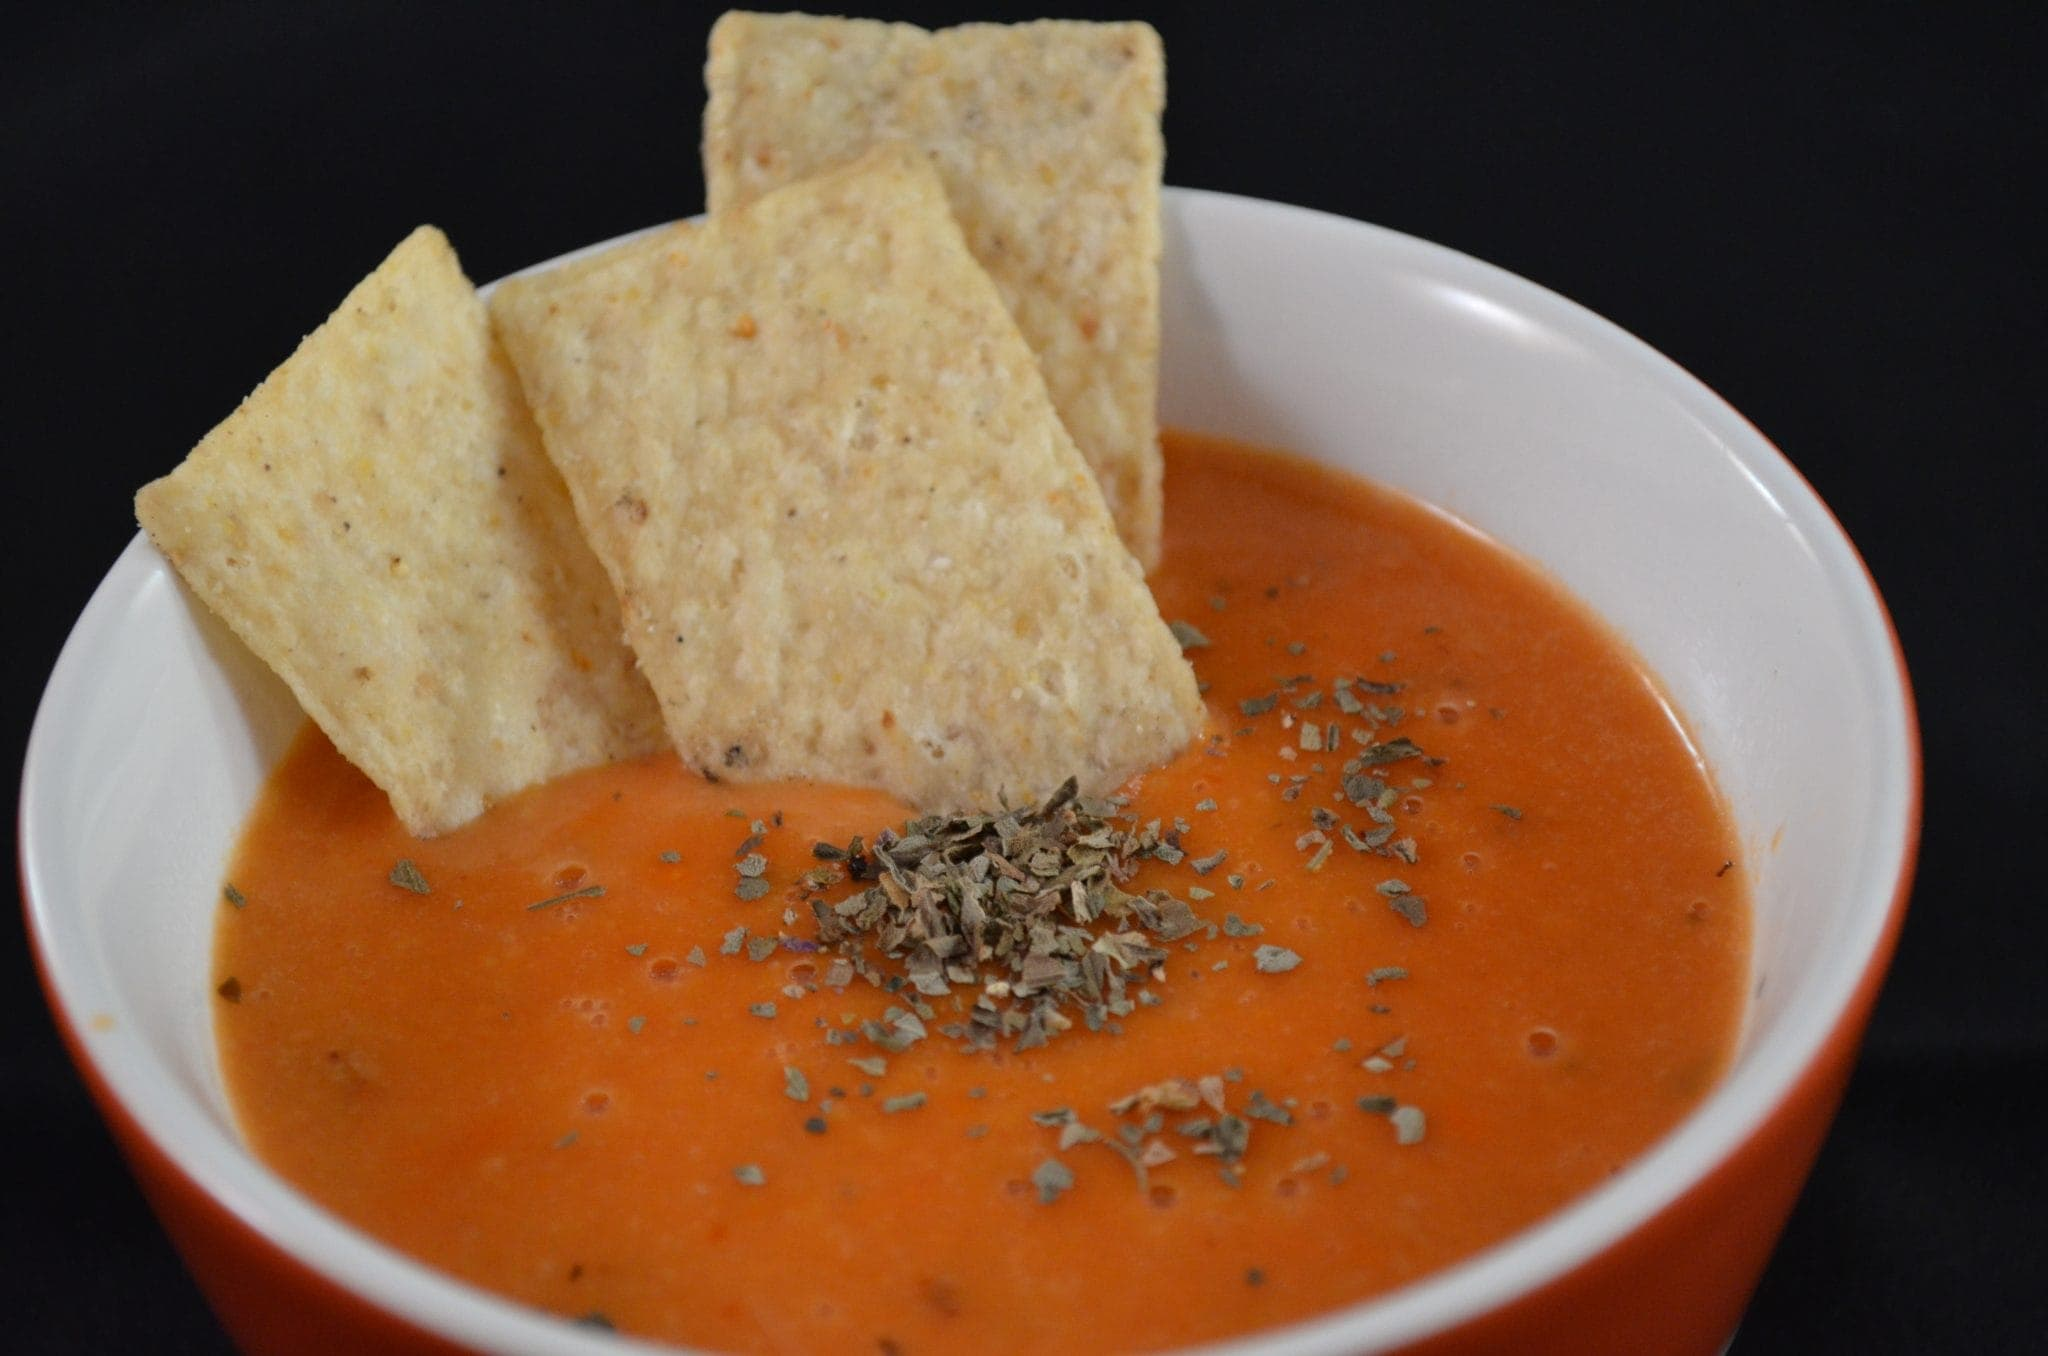 Creamy Parmesan Tomato Basil Soup (from a can!)